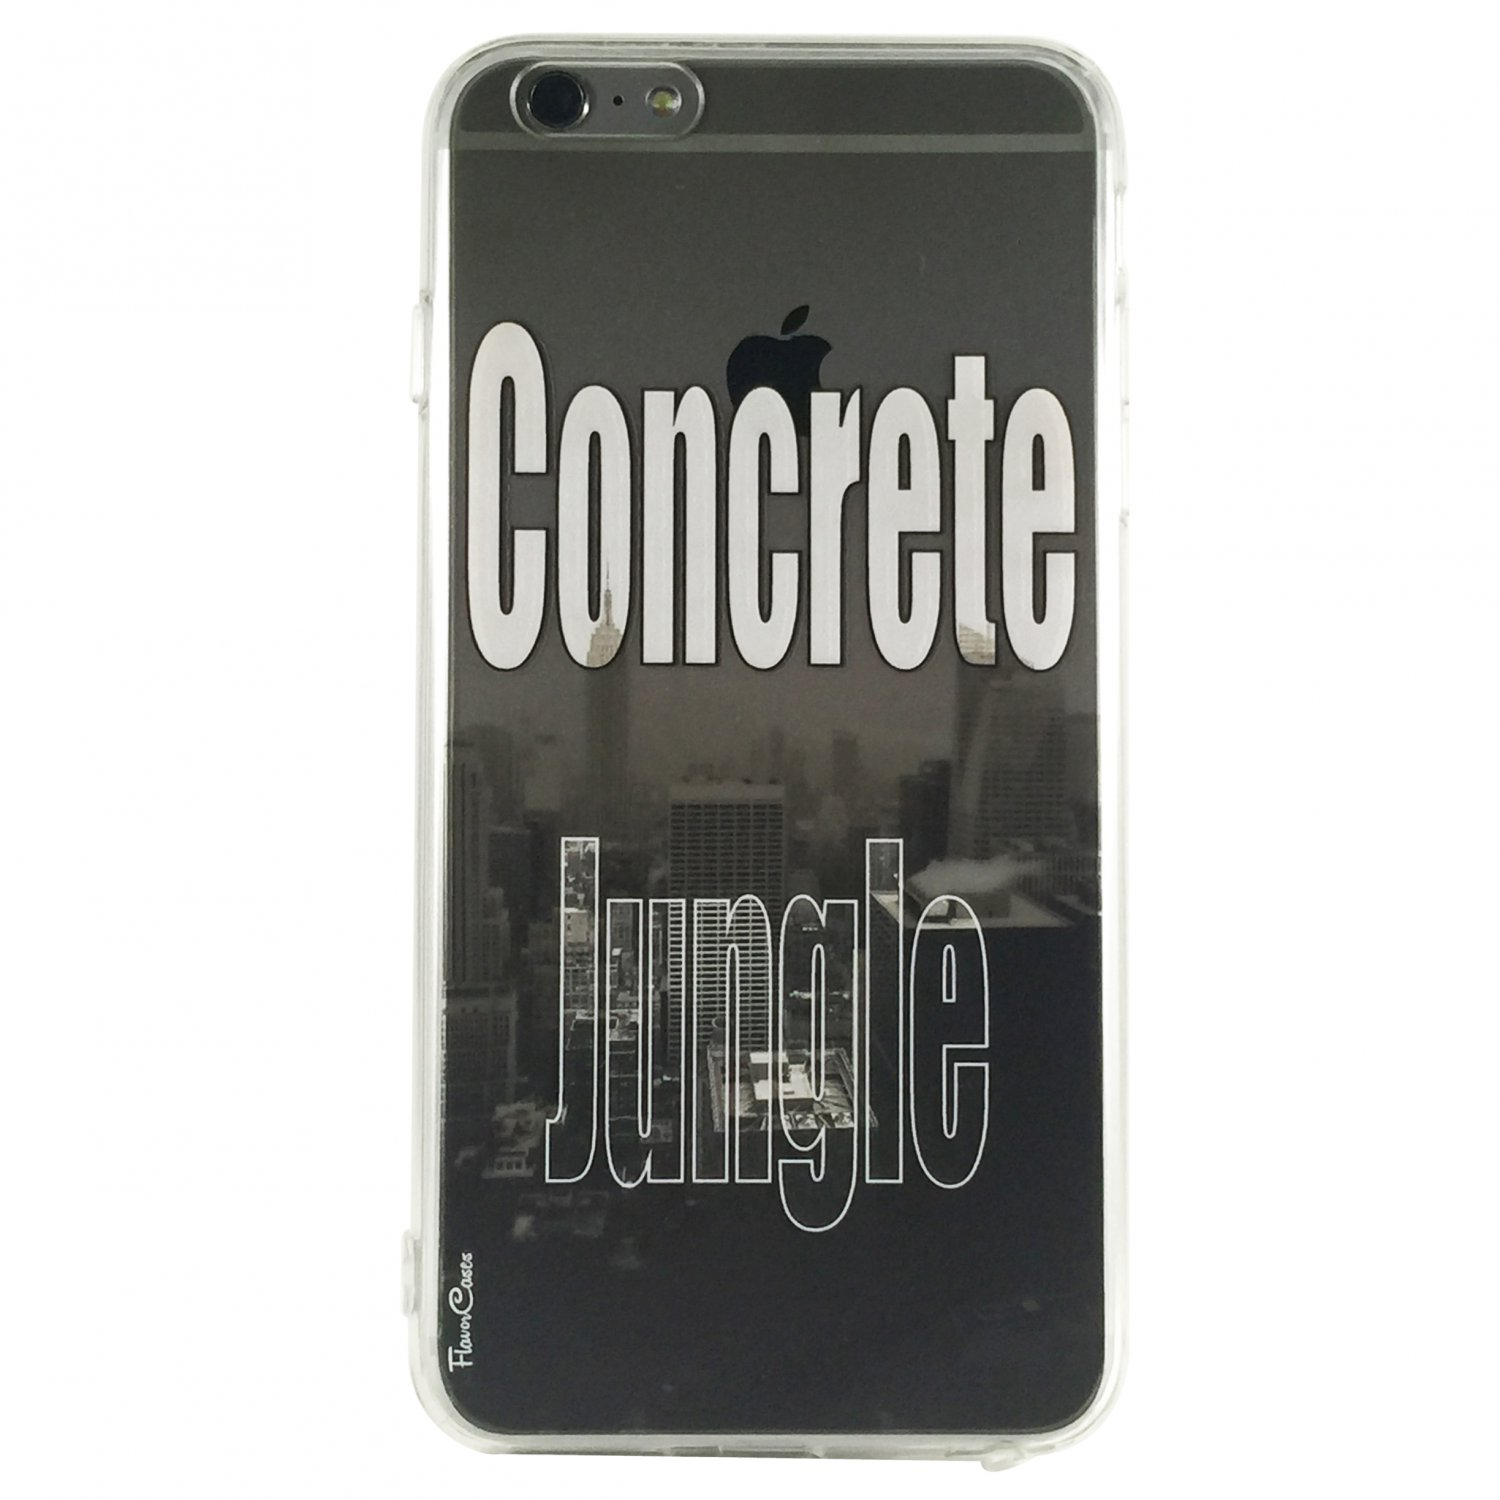 Concrete Jungle - New New York Jungle Cell Phone Case iPhone 6 plus ip6 plus